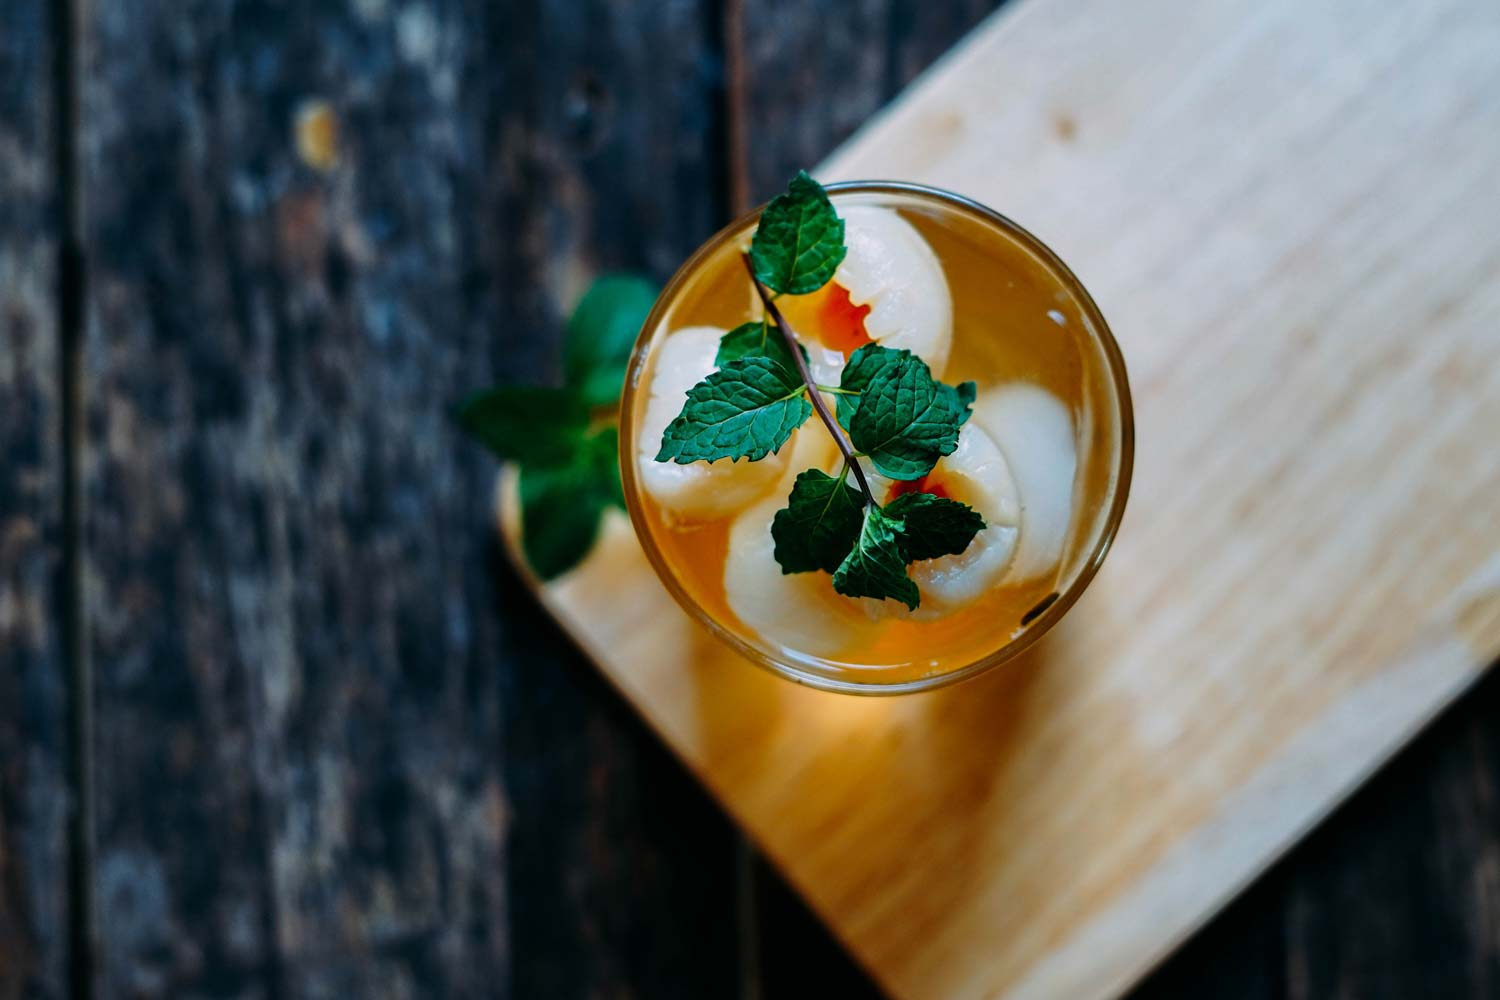 a cocktail on a wooden cutting board garnished with fresh mint leaves